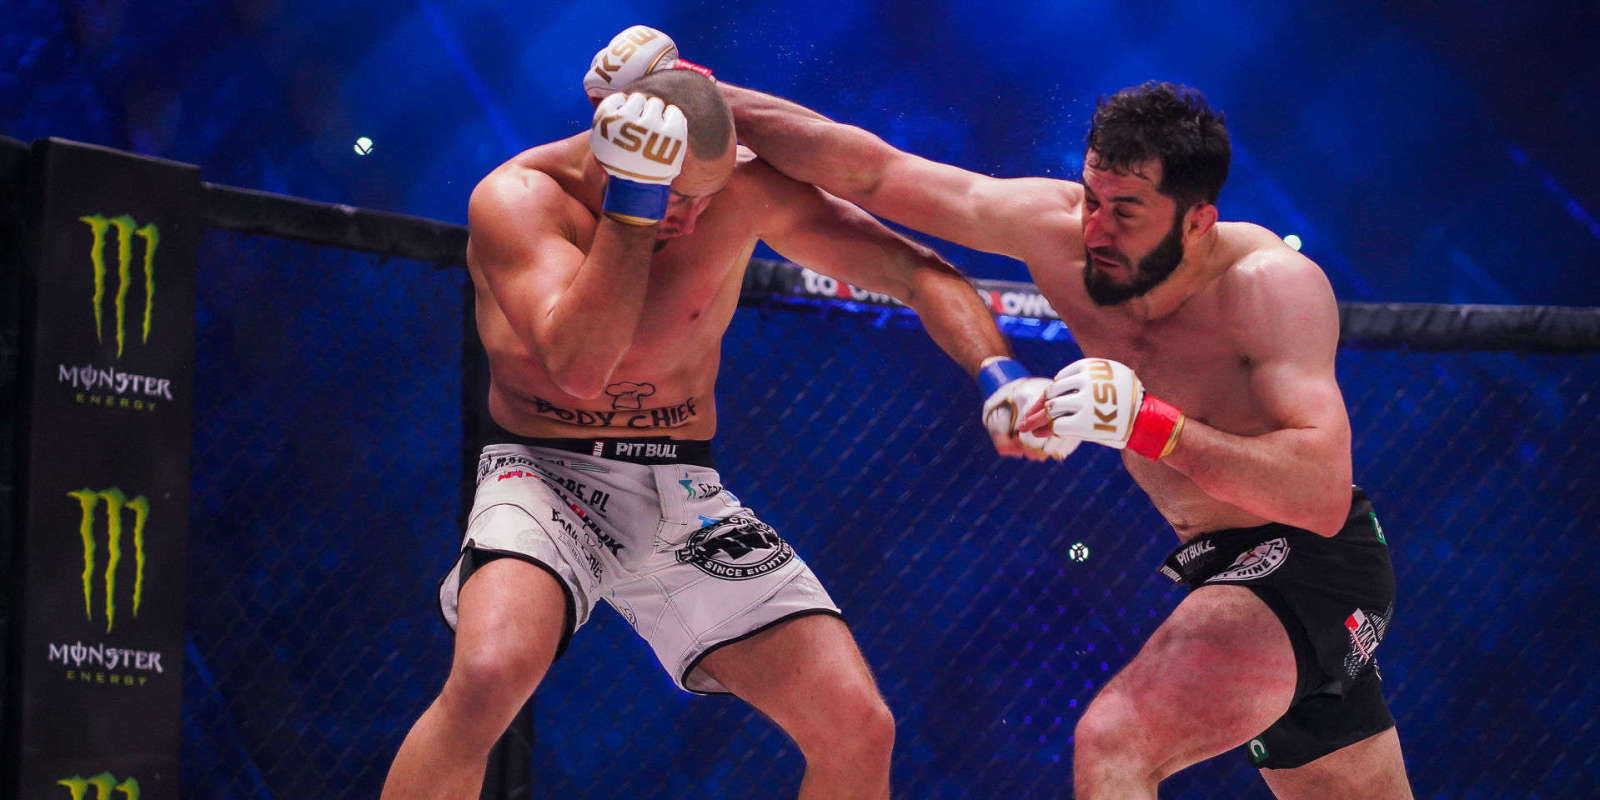 KSW 42 at Atlas Arena in Lodz, Poland - fight / action picture - Tomasz Narkun & Mamed Khalidov